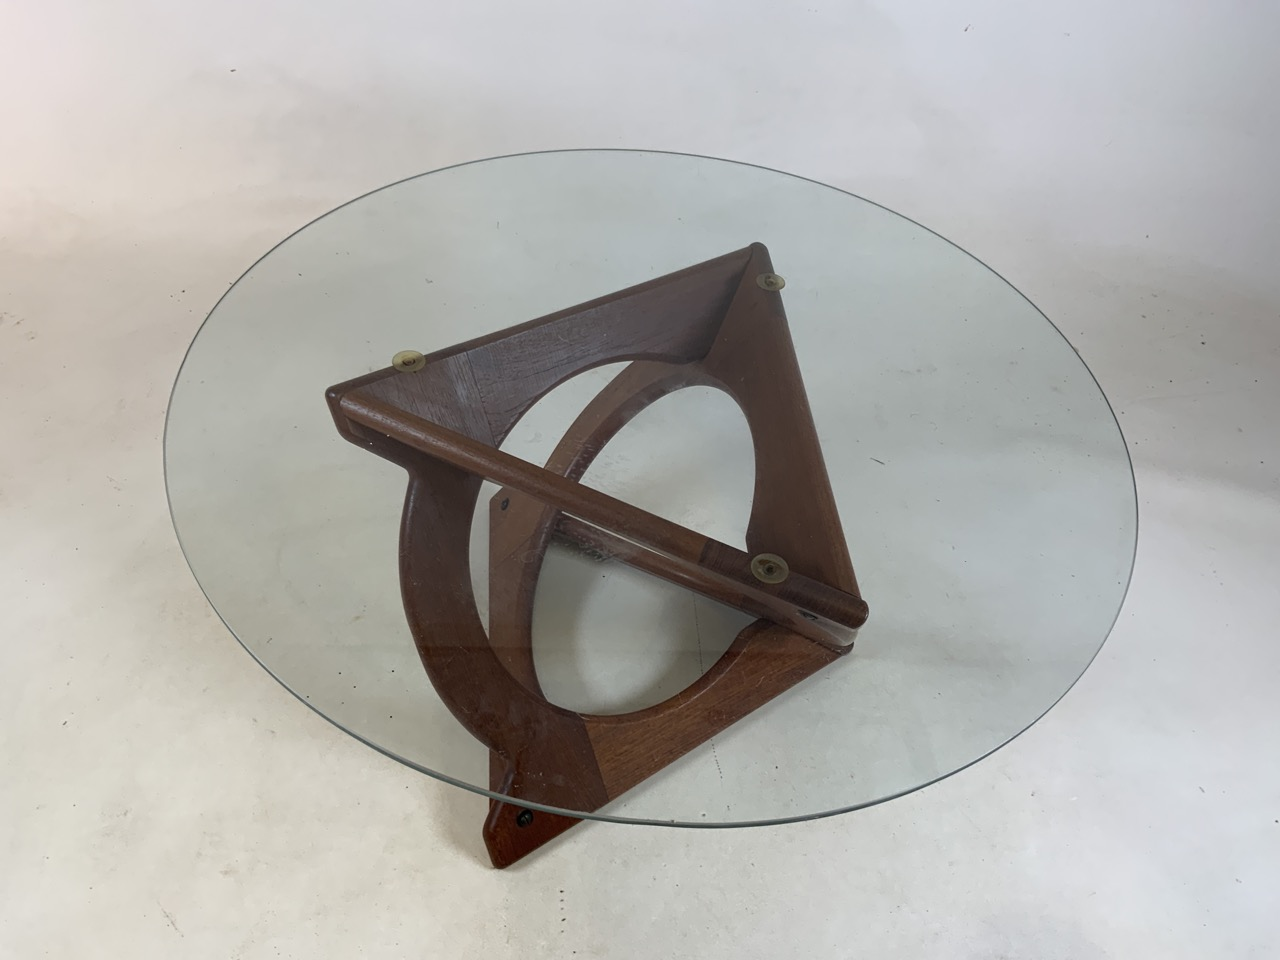 A Danish Glass top coffee table by Georg Jenson for Kubus. Diameter 75cm, Heoght 39cm - Image 5 of 5